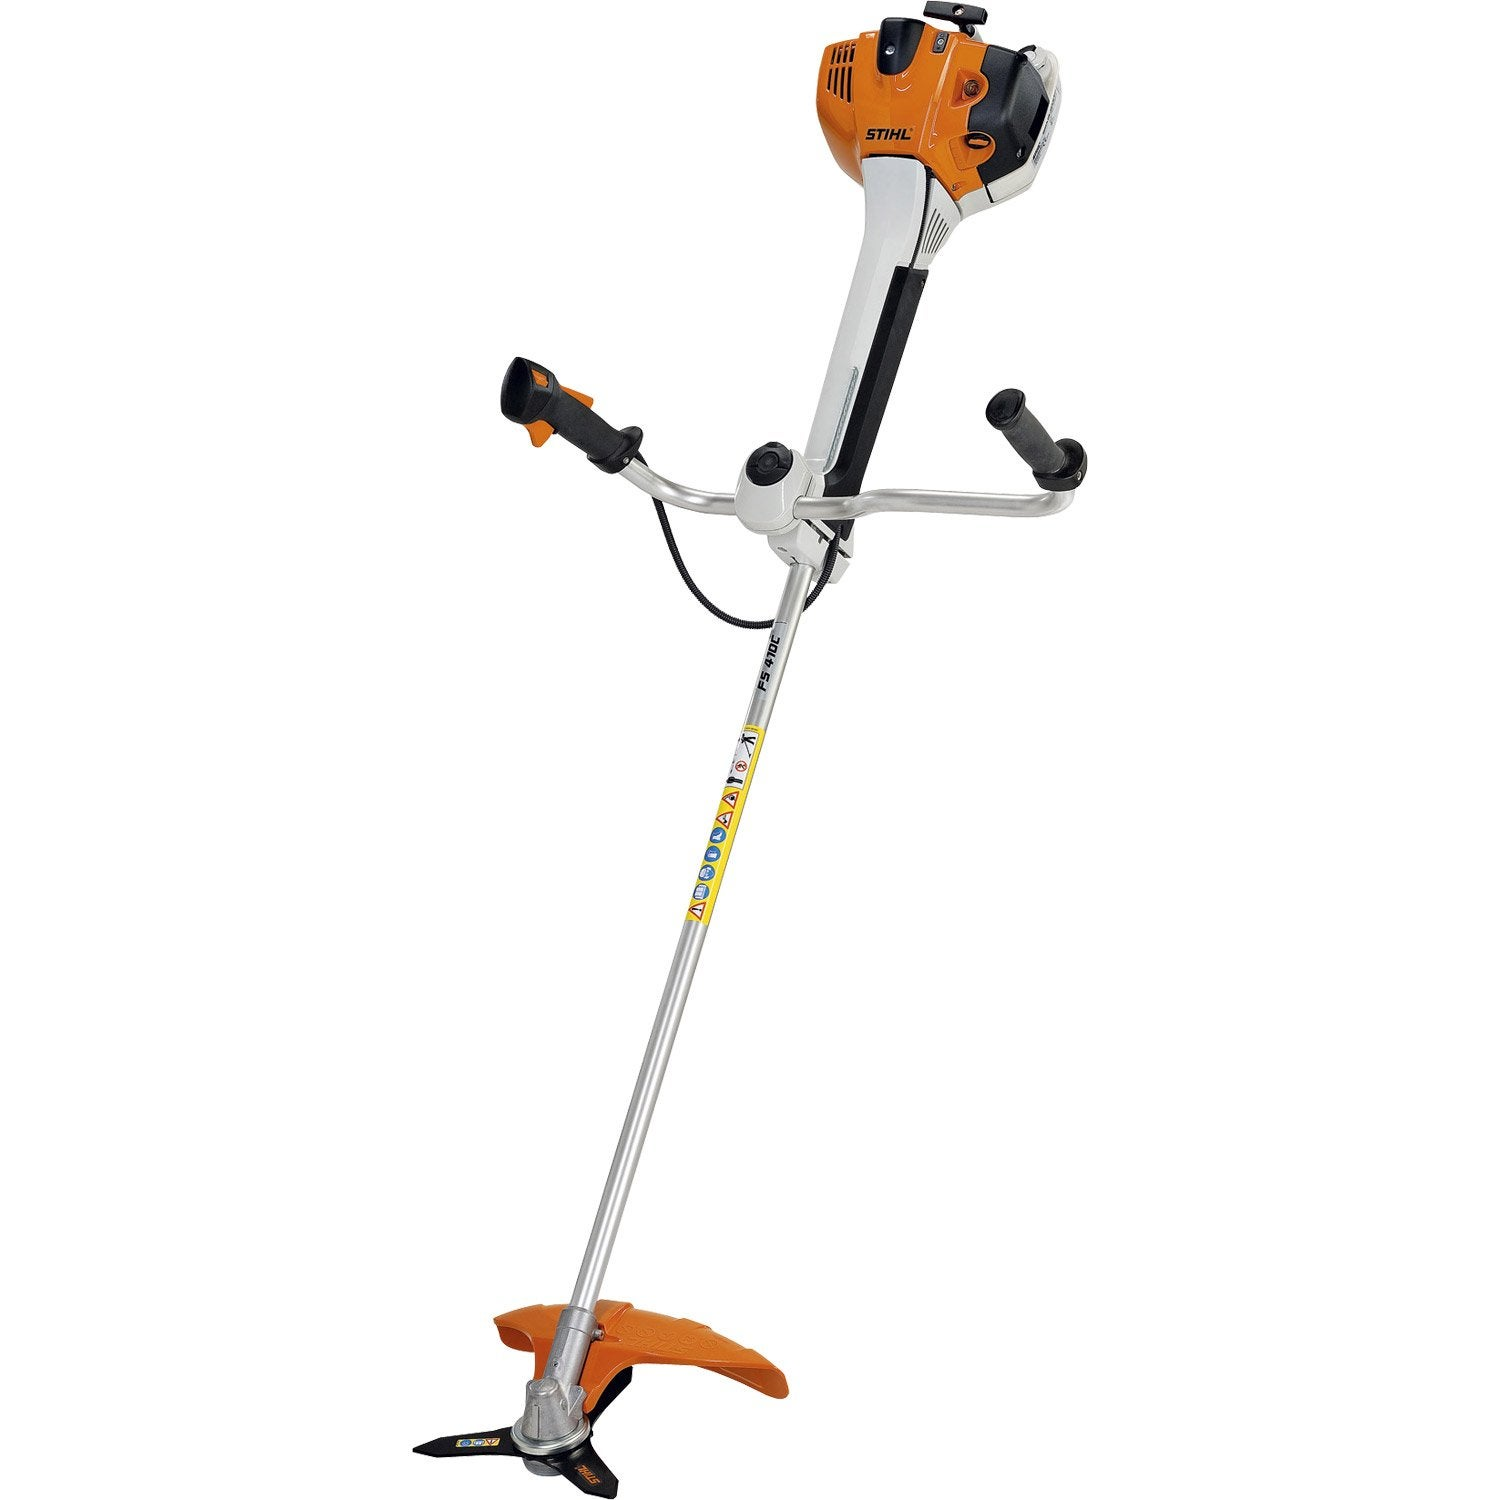 d broussailleuse essence stihl fs 410 ce 41 6 cm cm leroy merlin. Black Bedroom Furniture Sets. Home Design Ideas